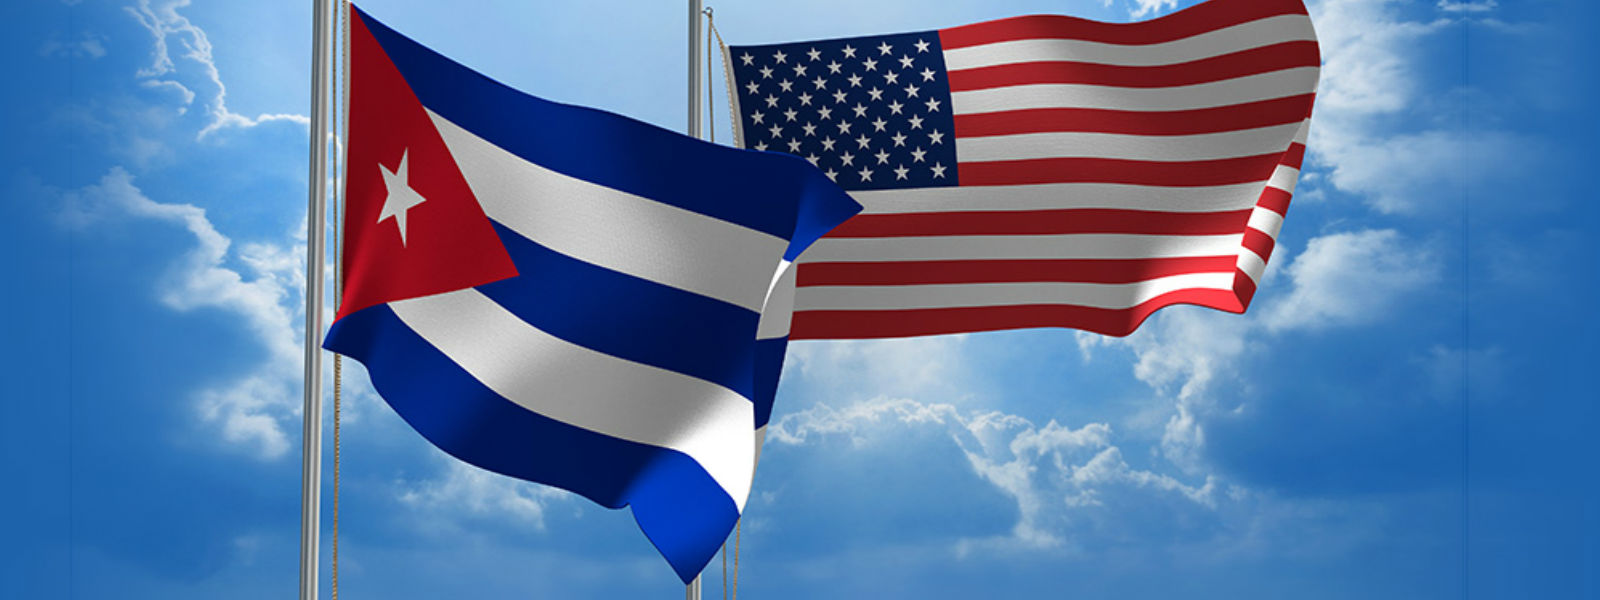 Cuban hospitality industry presses on in the face of U.S. threats